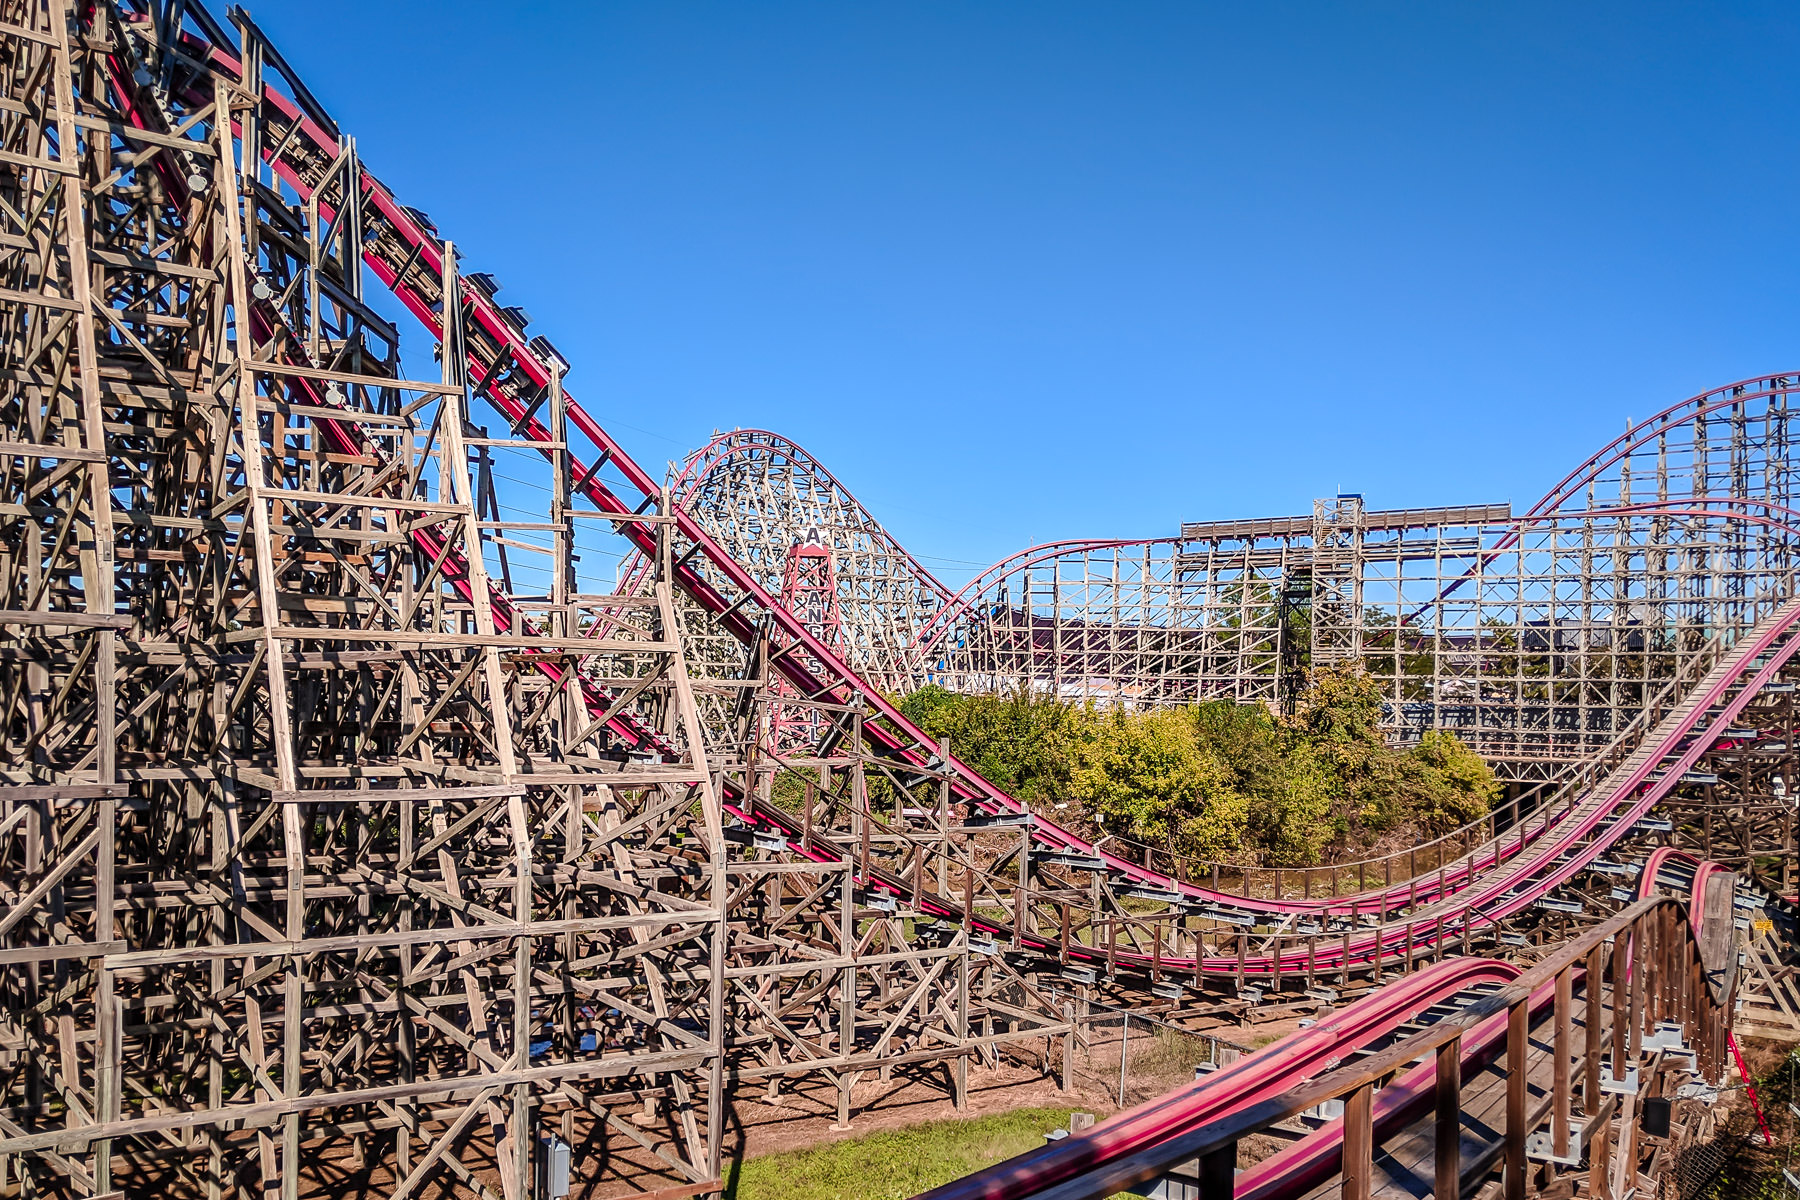 The complex wooden structure of the Texas Giant at Six Flags Over Texas, Arlington.